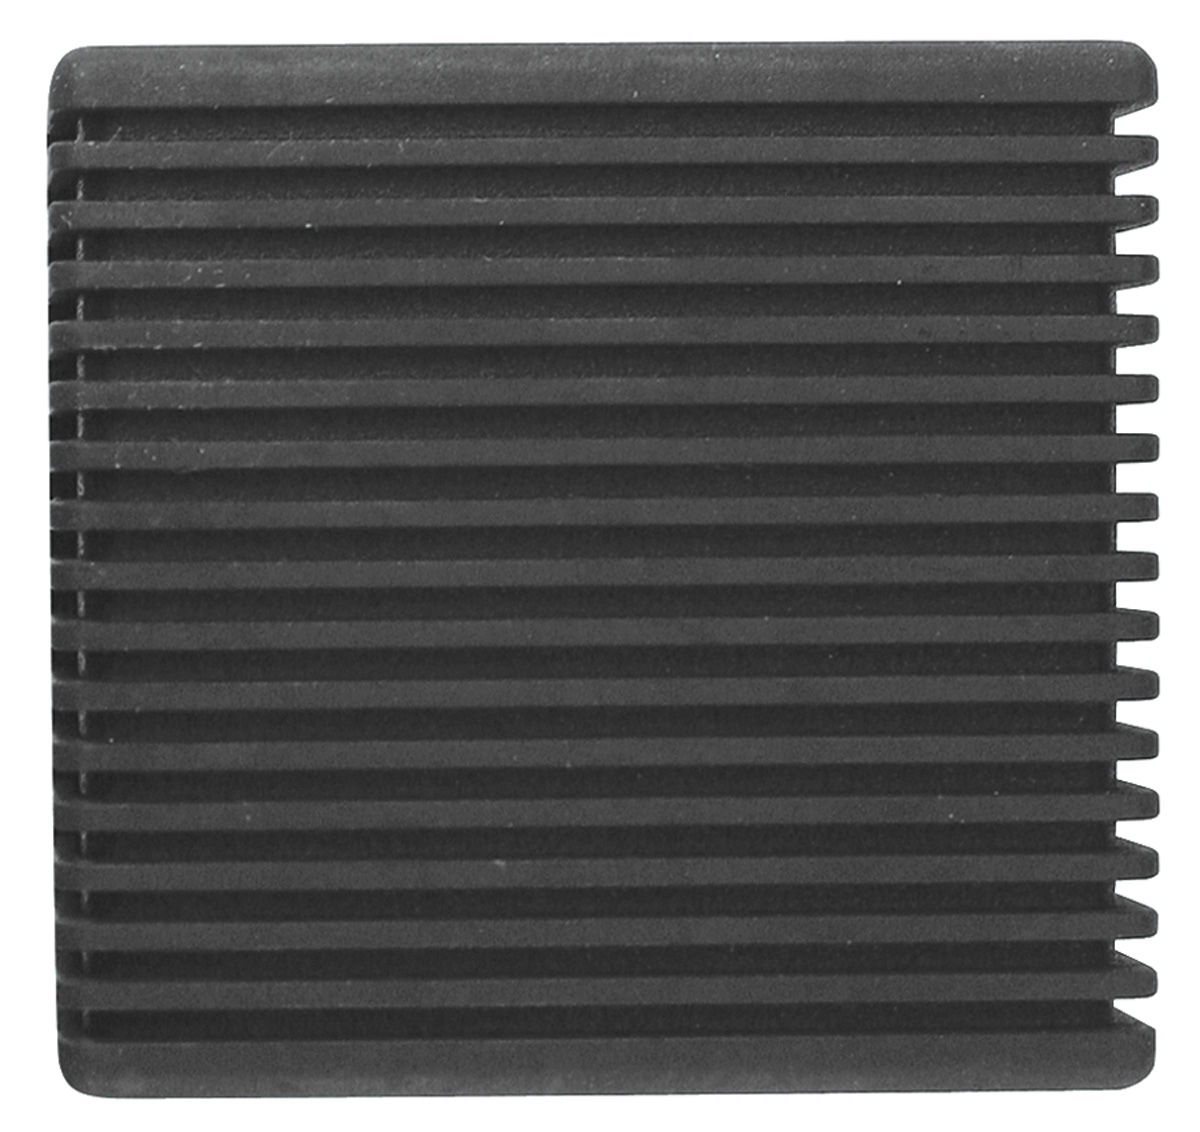 Photo of Catalina/Full Size Parking Brake Pedal Pad all models